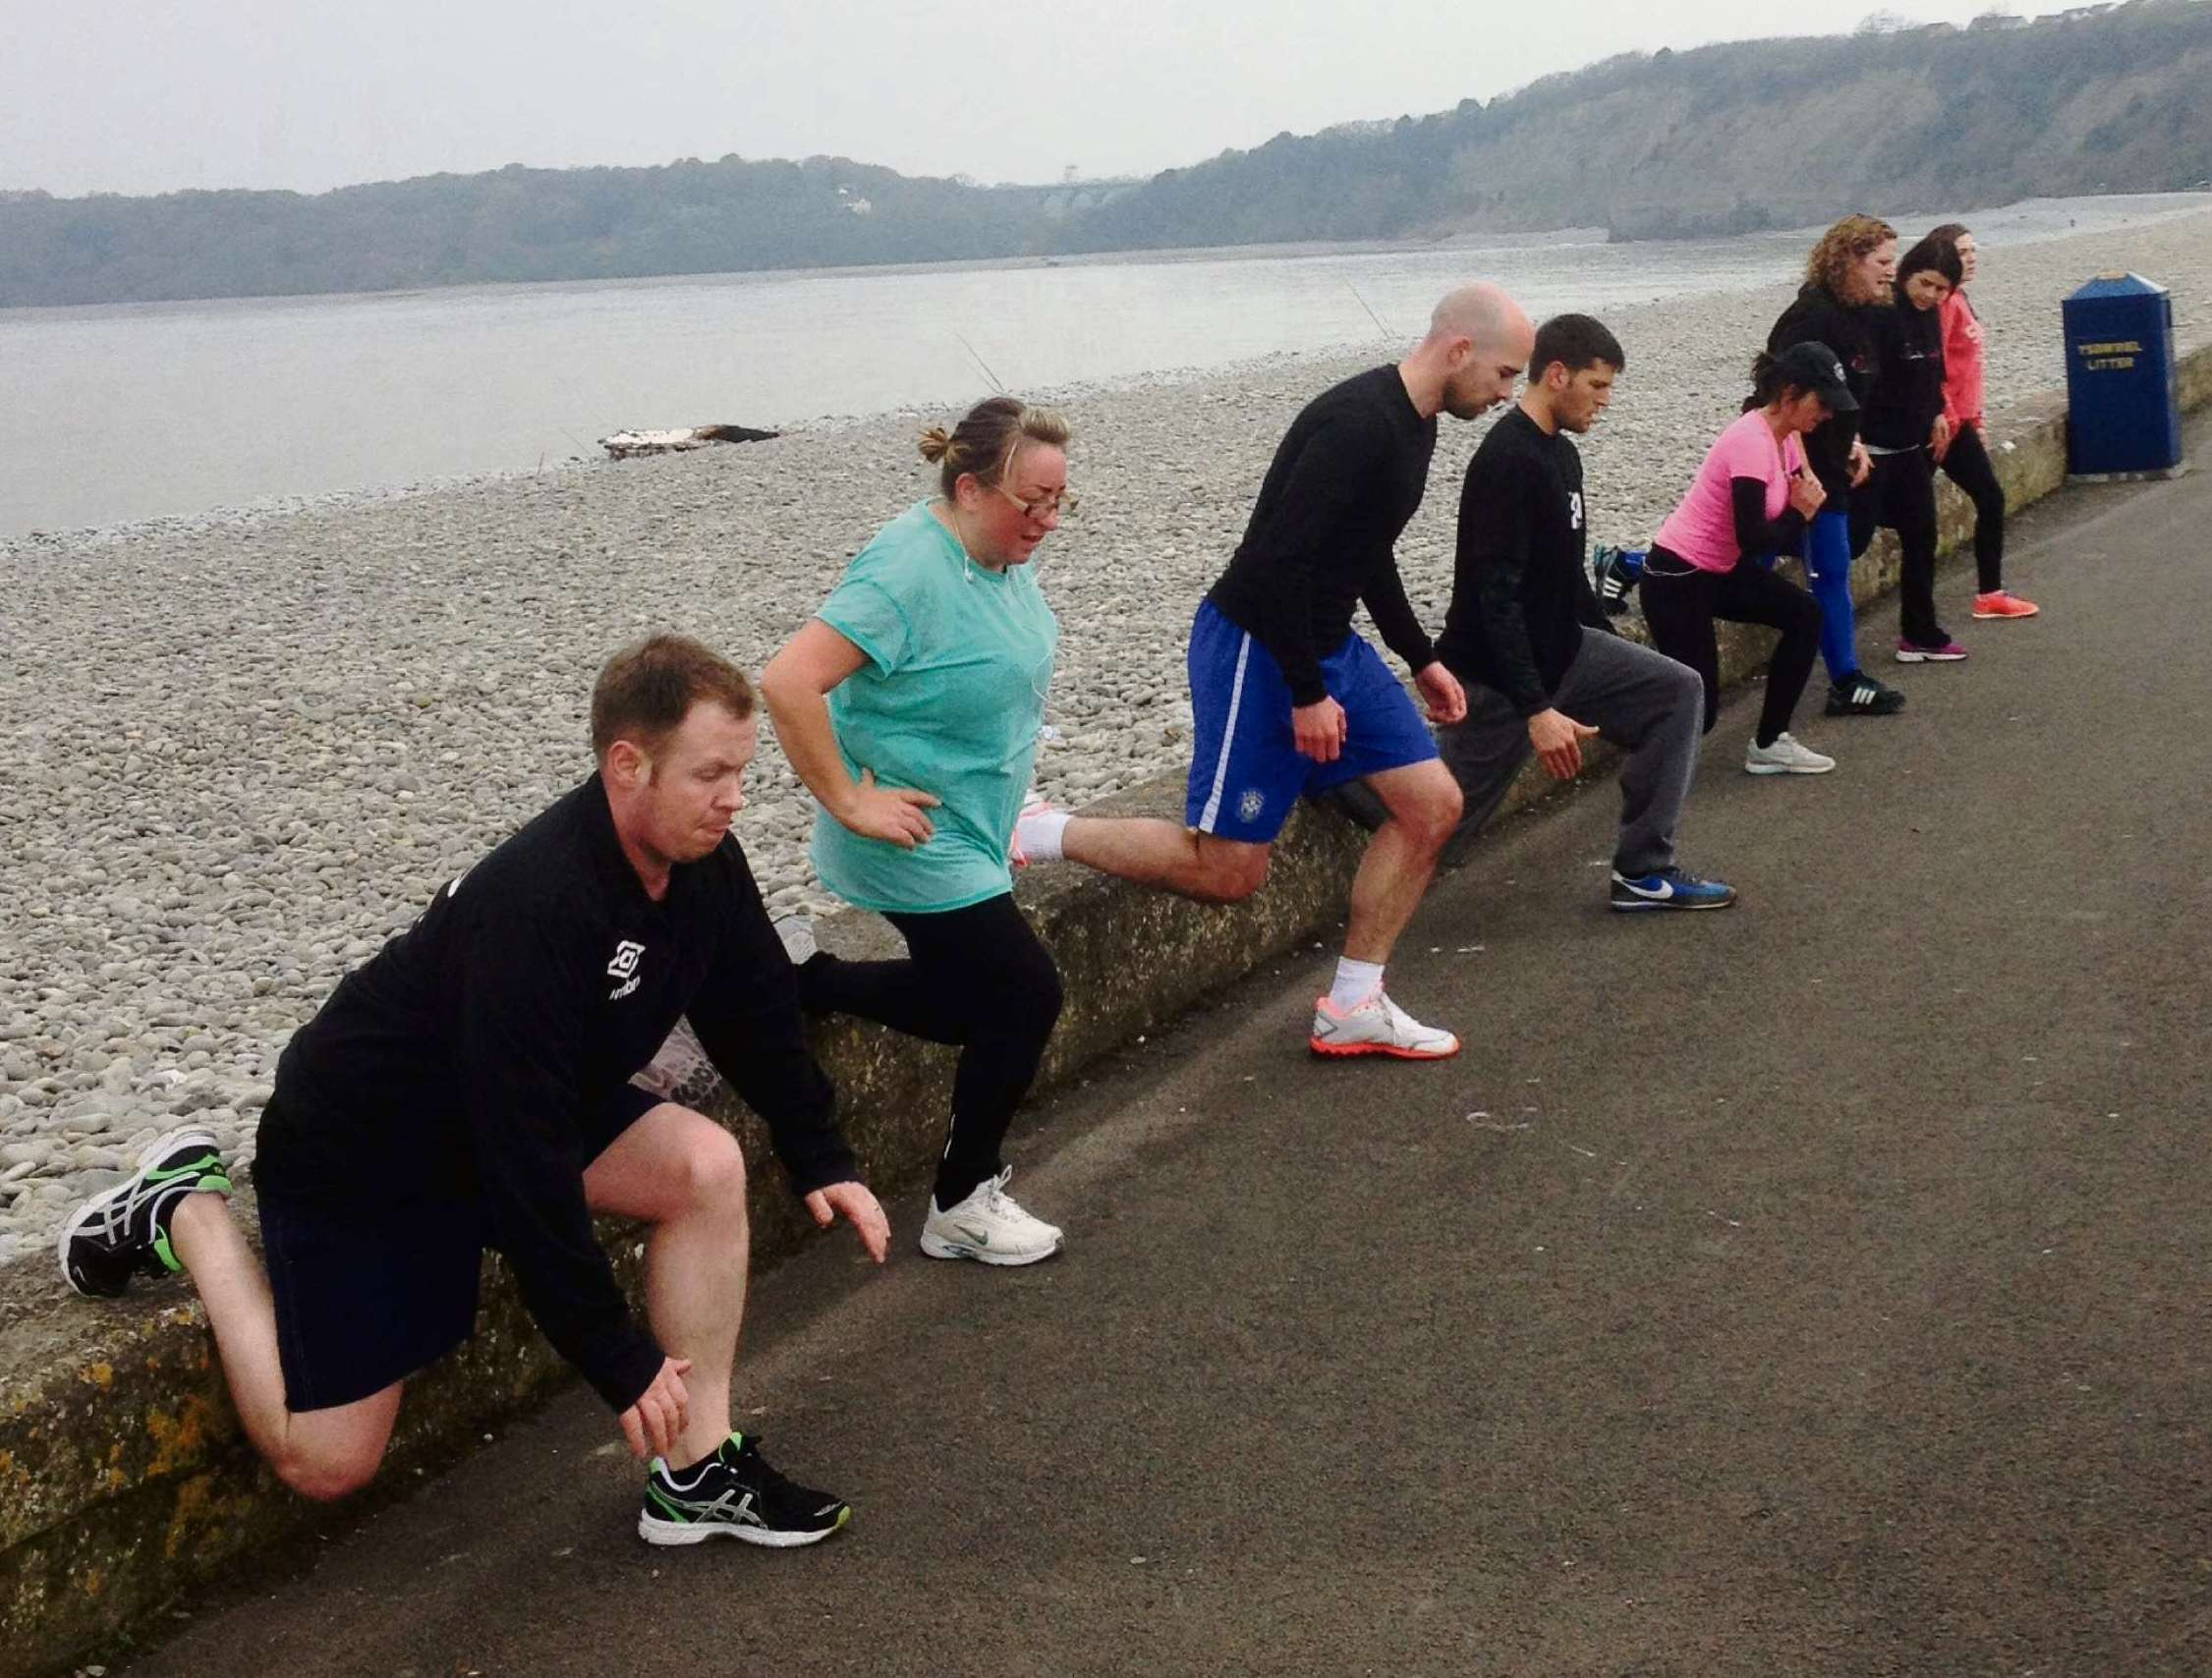 FITCLUB: Members warm up on Barry Island